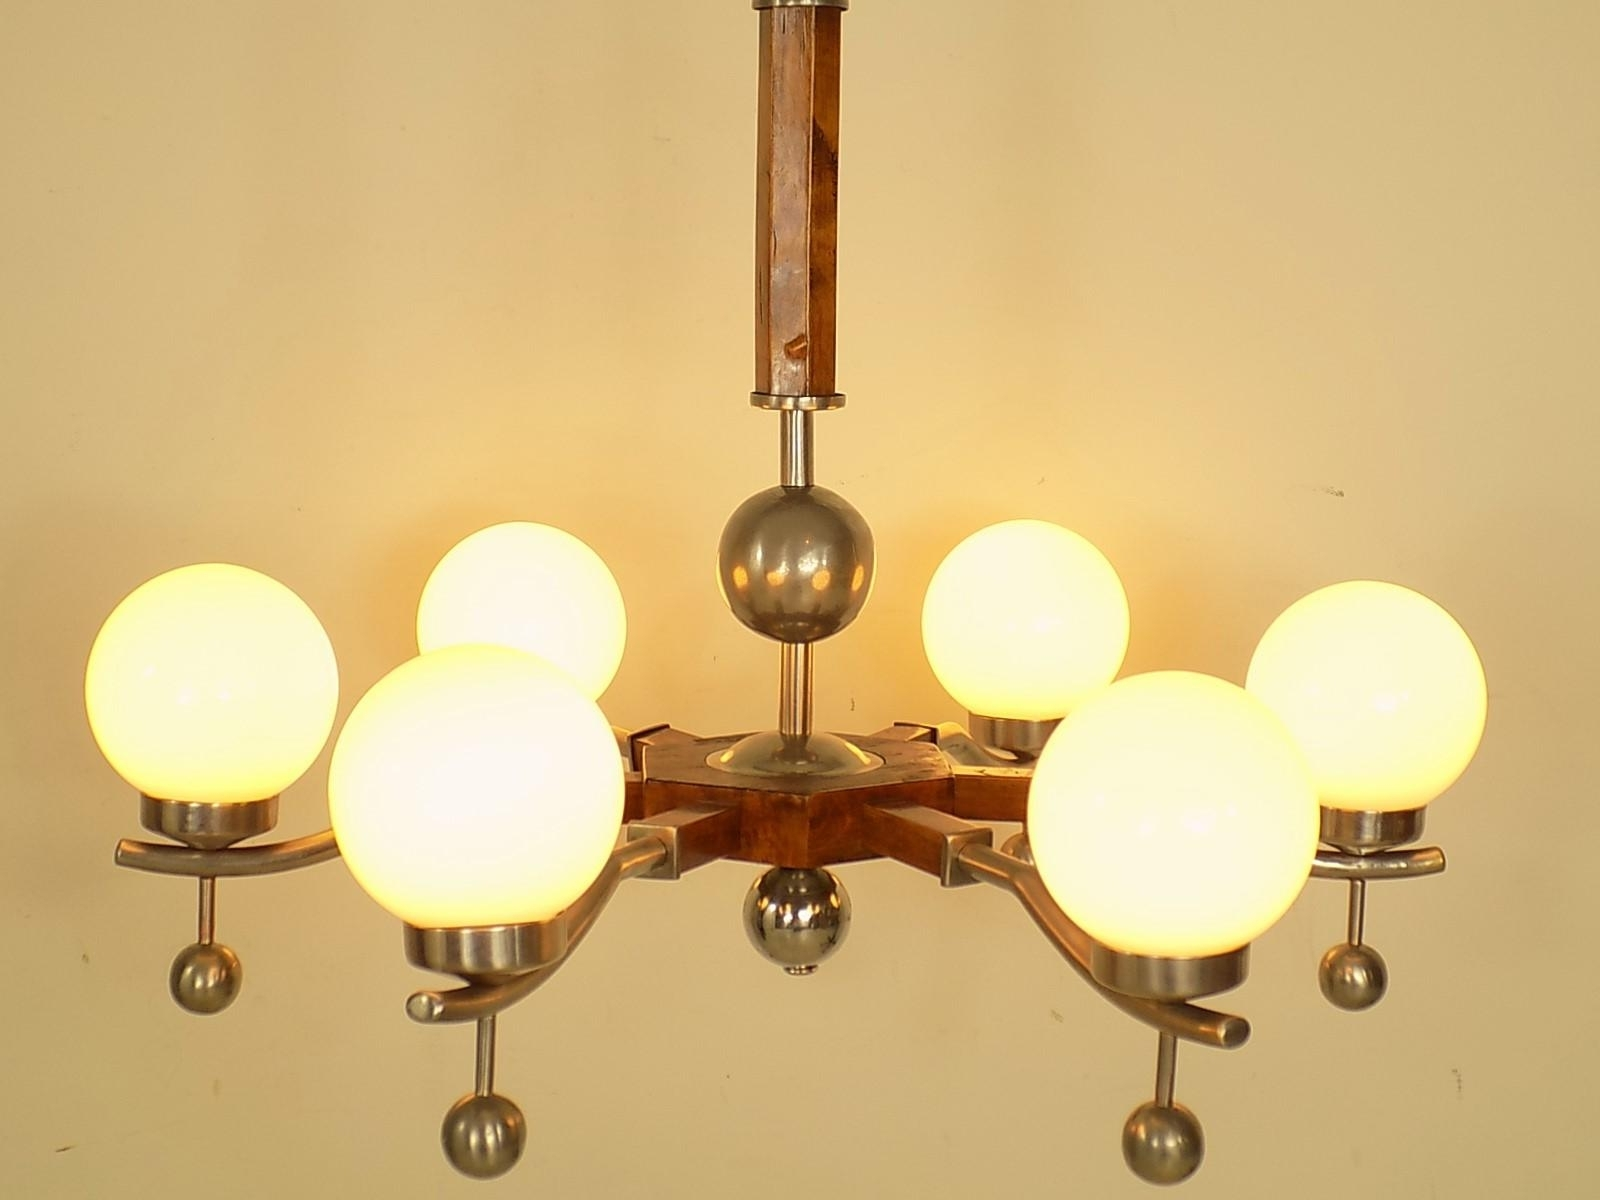 Newest Art Deco Chandelier, 1930S For Sale At Pamono Inside Art Deco Chandelier (View 19 of 20)